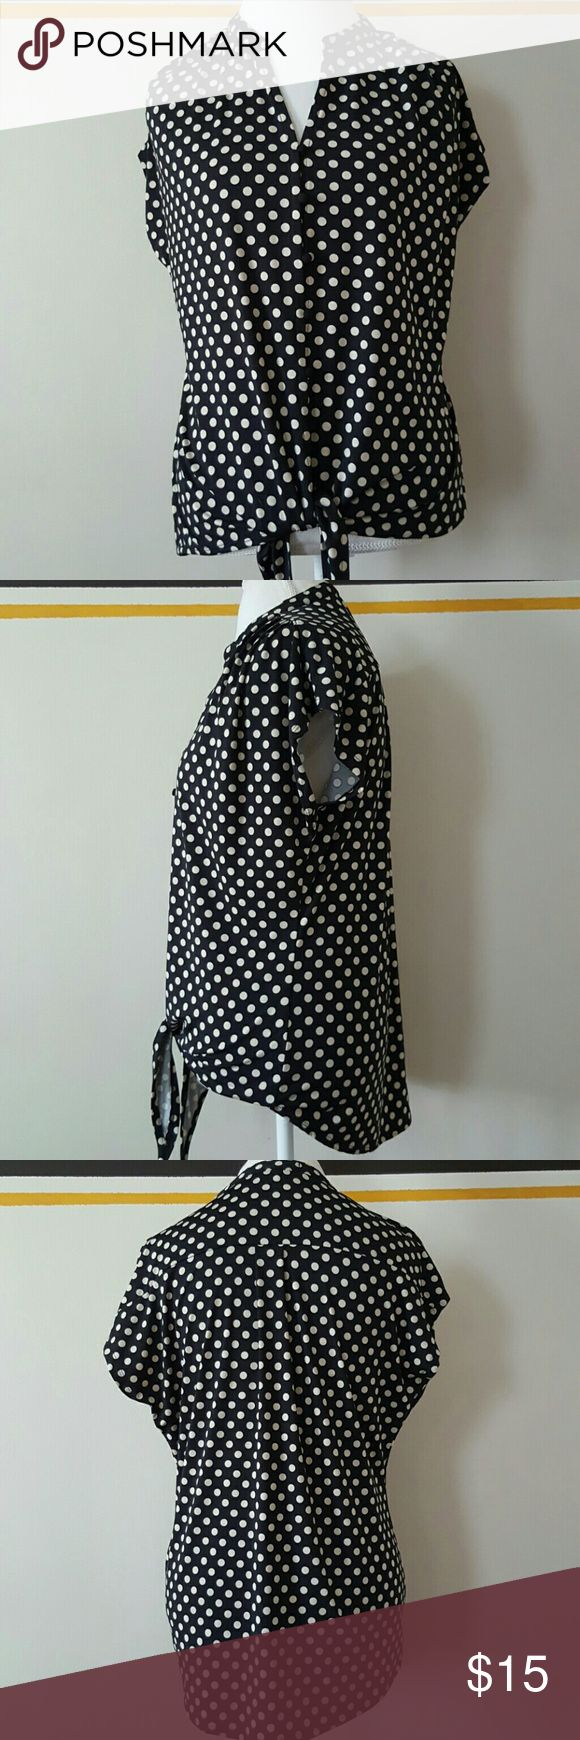 89th and MADISON POLKA DOT TIE TOP 89th and MADISON POLKA DOT TIE TOP  PRE-OWNED  SIZE LARGE  BLACK WITH TAN POLKA DOTS ROOCHING ON SHOULDERS  EUC!!! HIGHLOW  25' FRONT LENGTH LAYING FLAT  26- 1/2 ' BACK LENGTH LAYING FLAT  21' ARMPIT TO ARMPIT 89th & Madison Tops